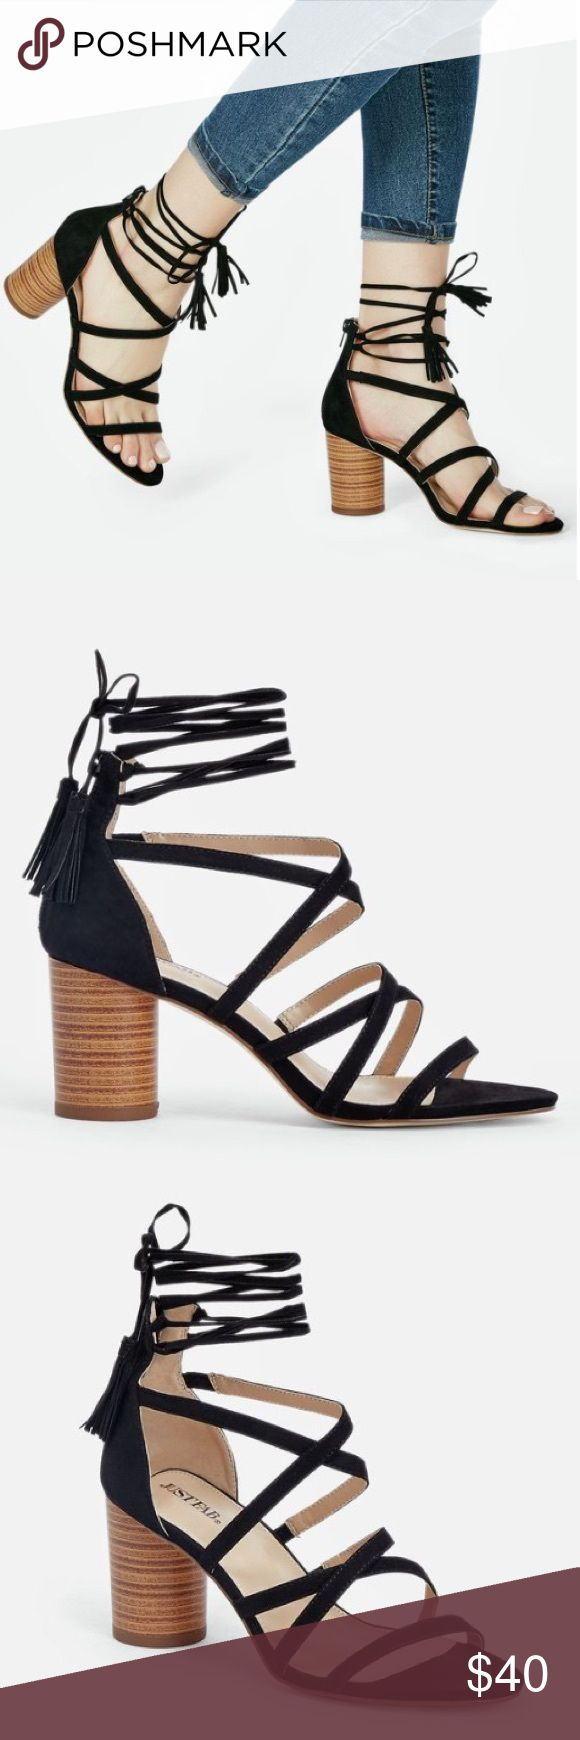 """ROMA ROUND HEEL STRAPY BLACK SANDALS LACE UP New! Just Fab. A faux stacked cone heel sandal with a lace up tassel tie closure. Approx. Heel Height: 2.75"""" Fit: True to Size ( not zara ) Zara Shoes Sandals"""